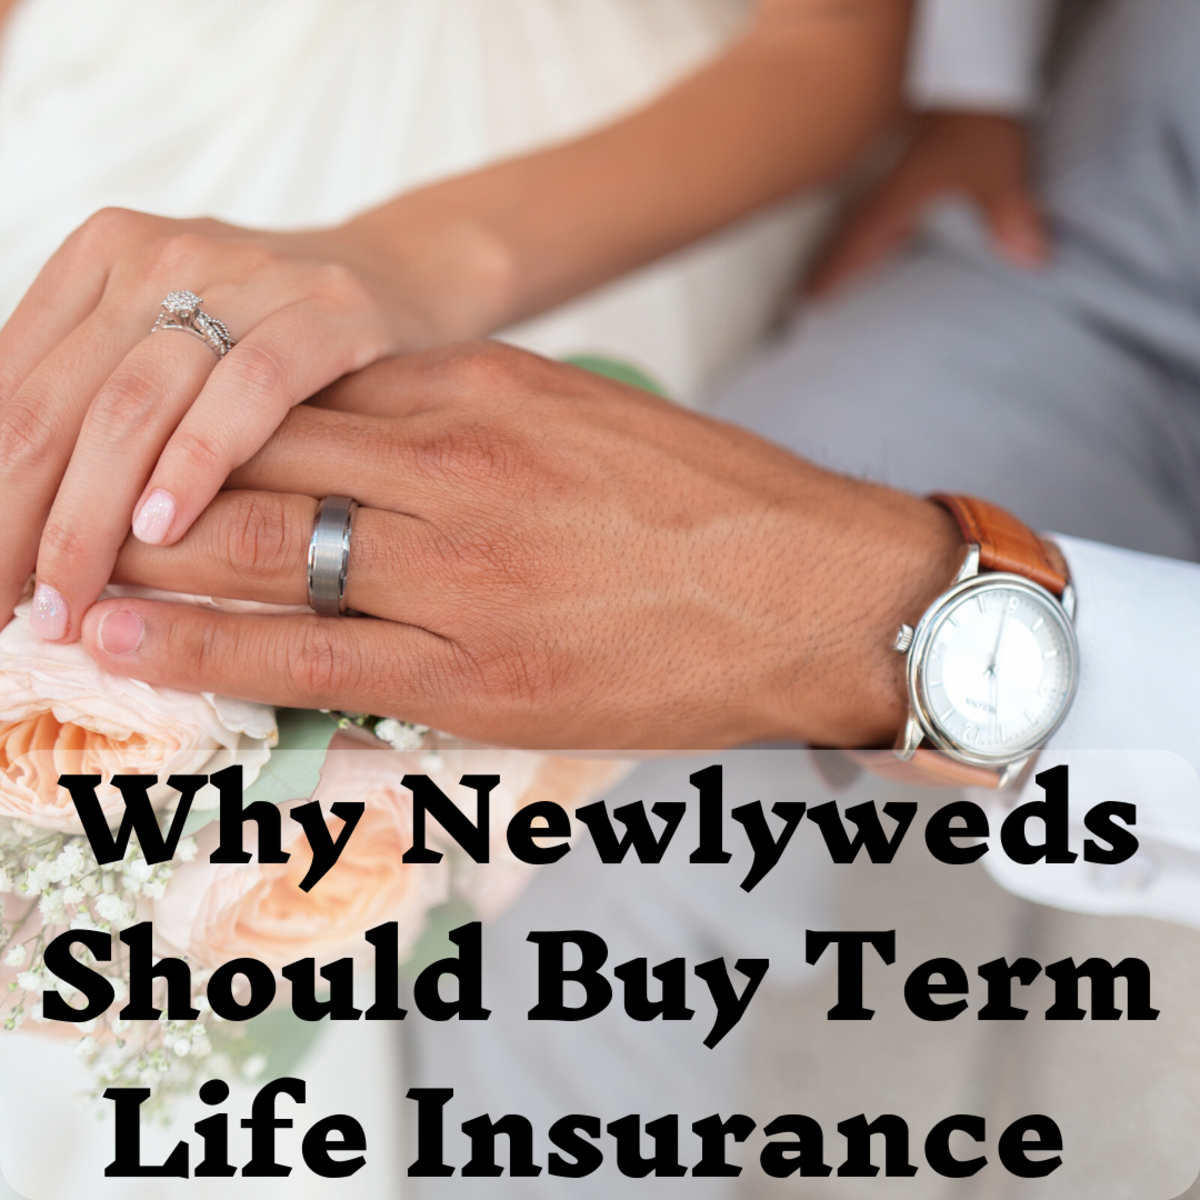 Read on to learn why term life insurance is essential for newlyweds.